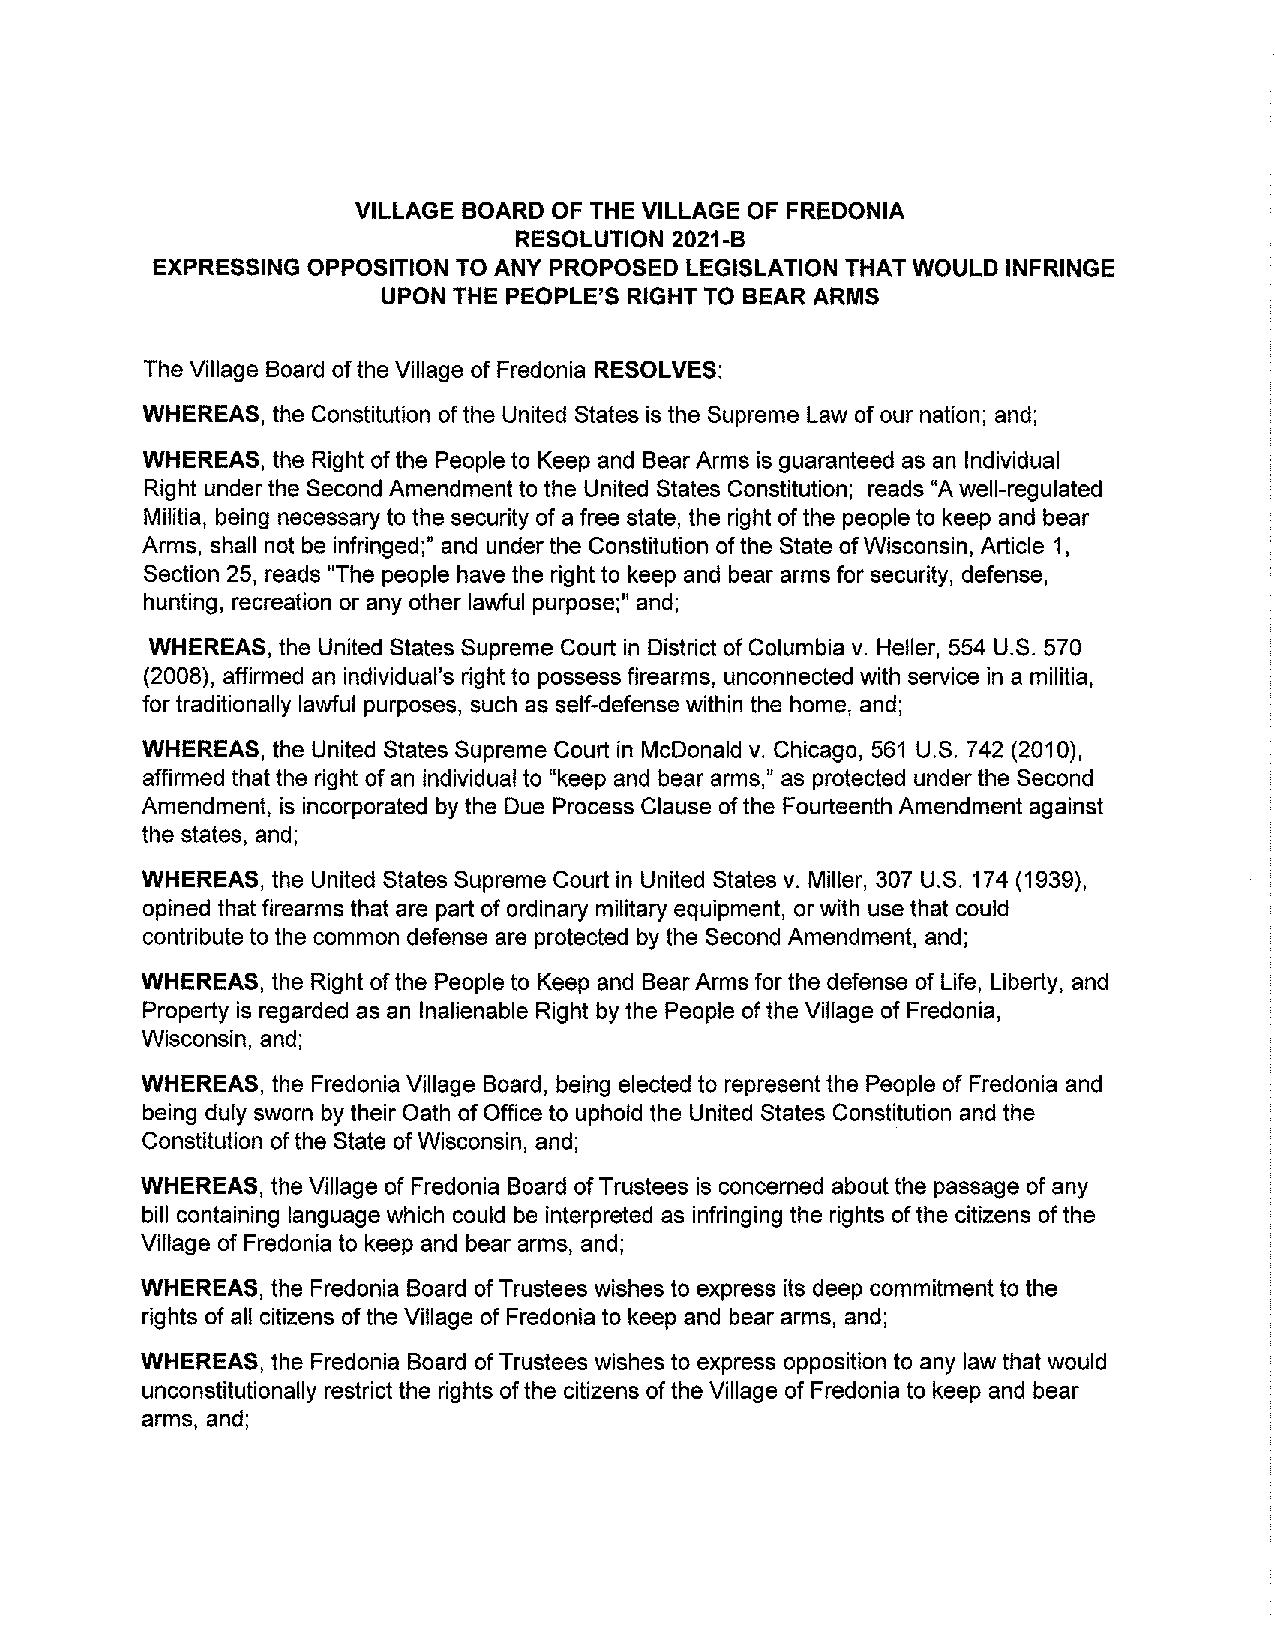 Village of Fredonia Resolution Page 1